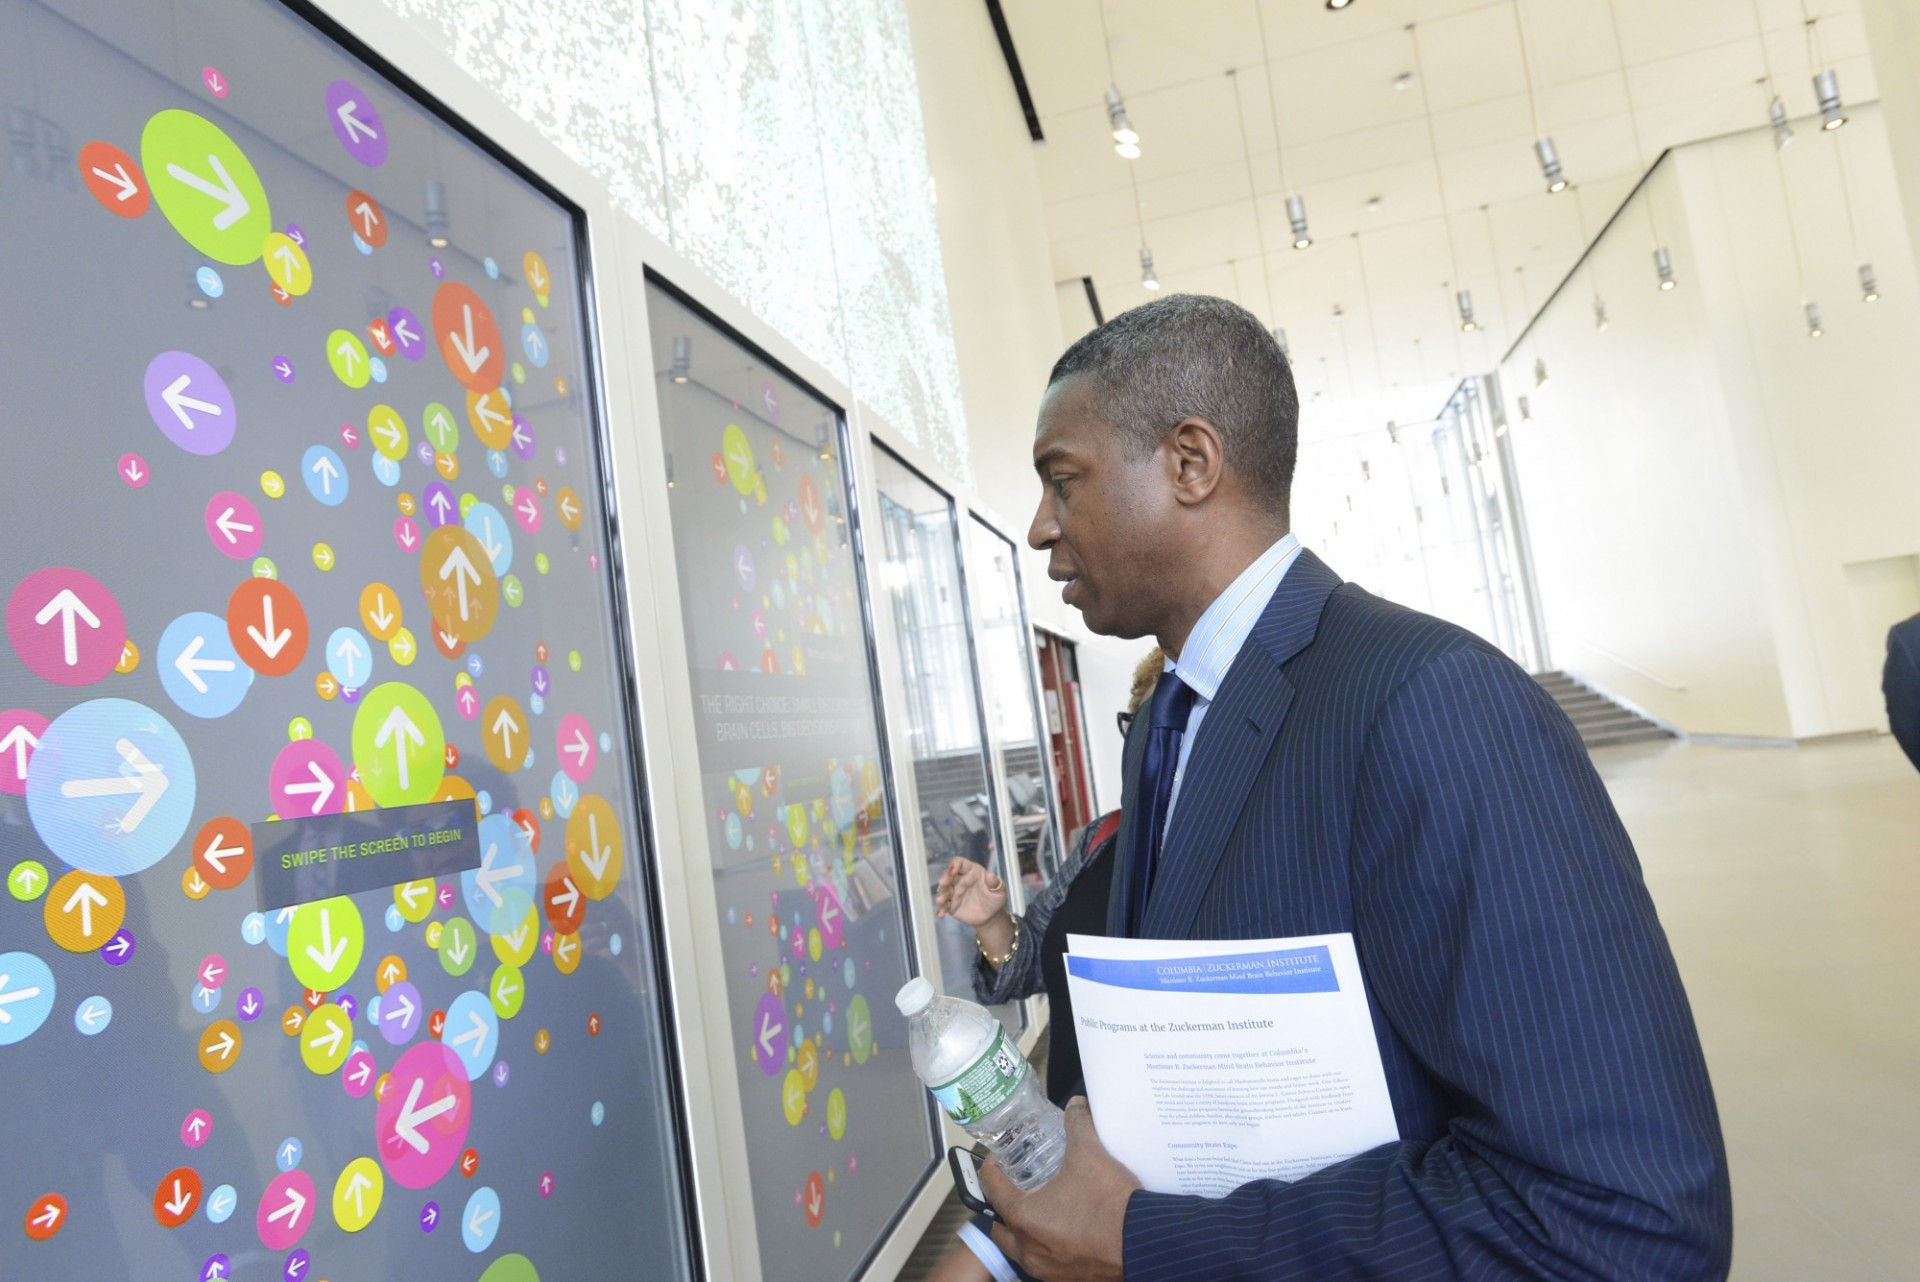 Gerrard Bushell, president and CEO of DASNY, using the Brain Index in the lobby of the Jerome L. Greene Science Center during a recent tour of the building. (Photo credit: DASNY)